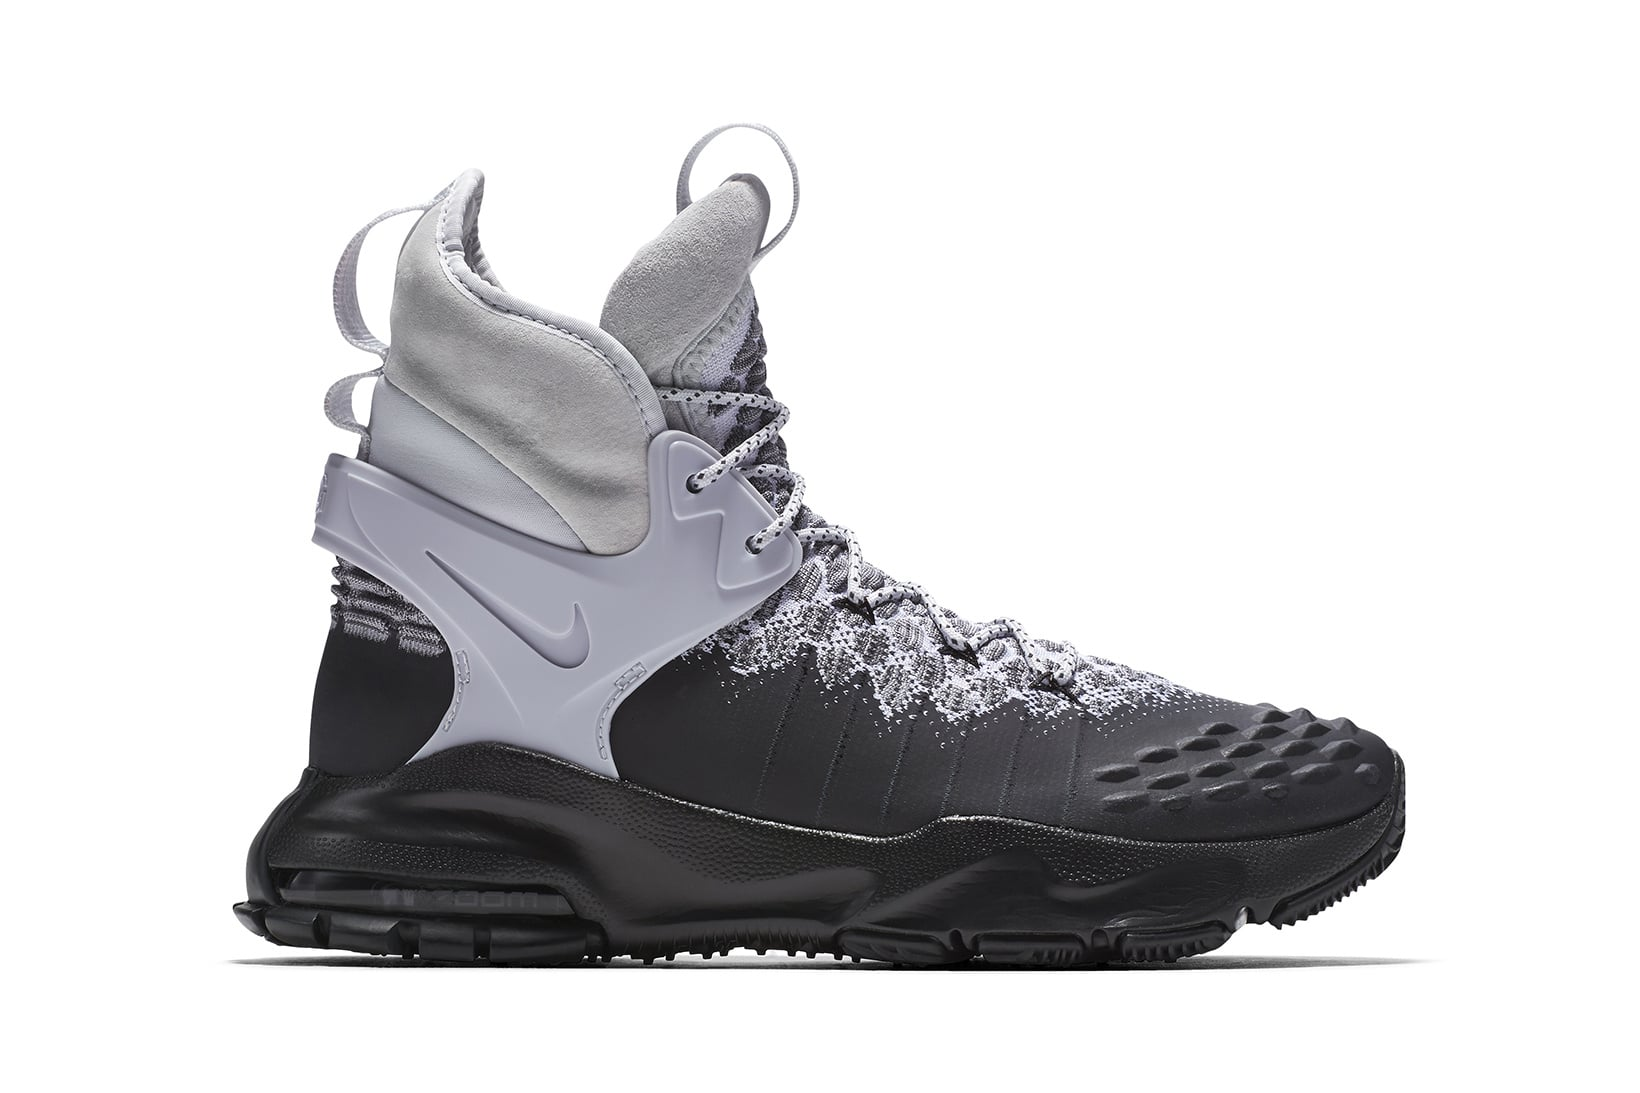 fb58ce848d5 Nike Introduces the NikeLab ACG Air Zoom Tallac Flyknit Boot | Man ...